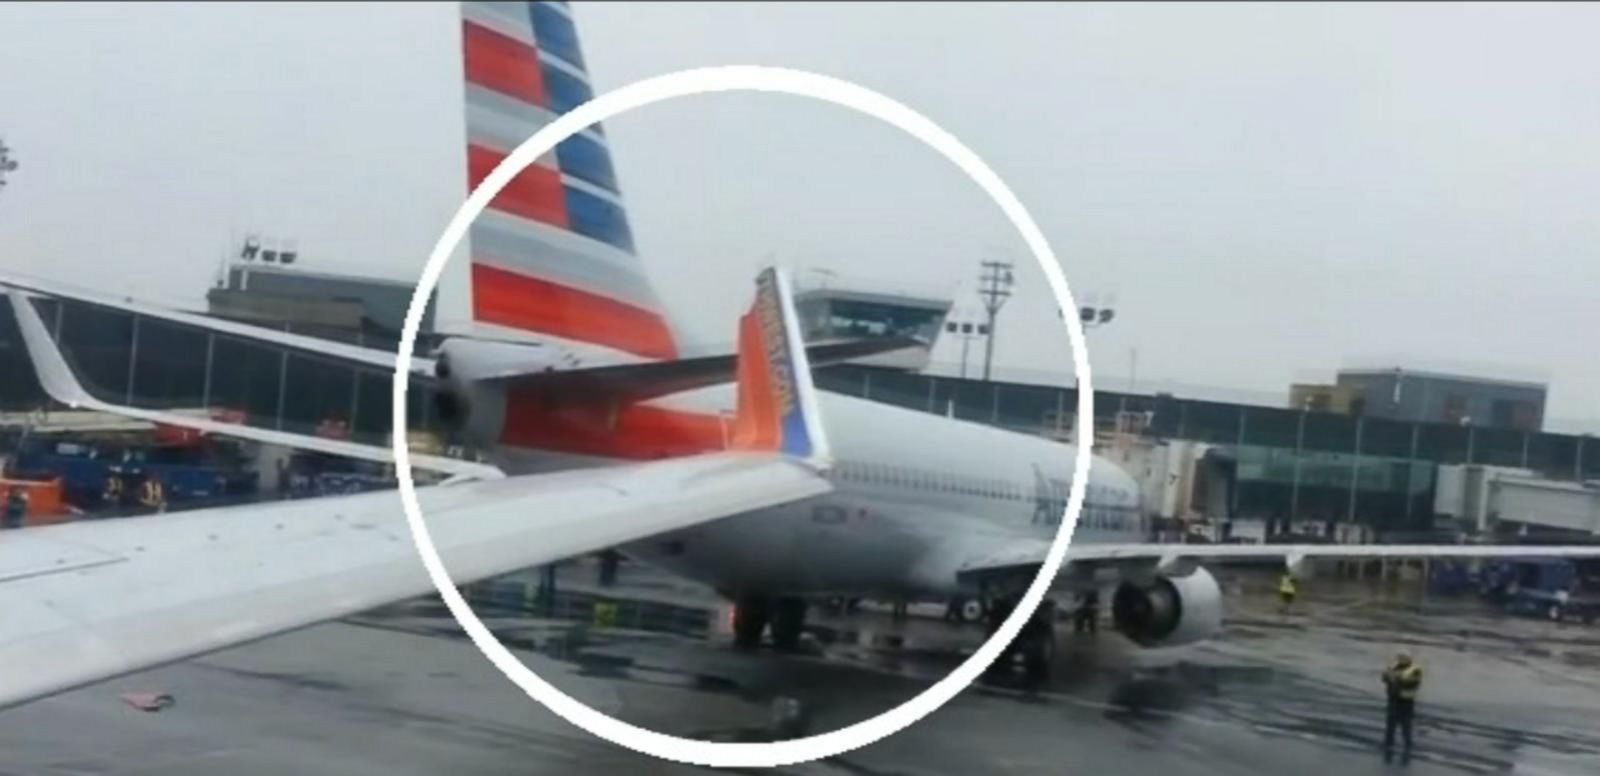 VIDEO: No injuries were reported from the two-plane collision at LaGuardia Airport.